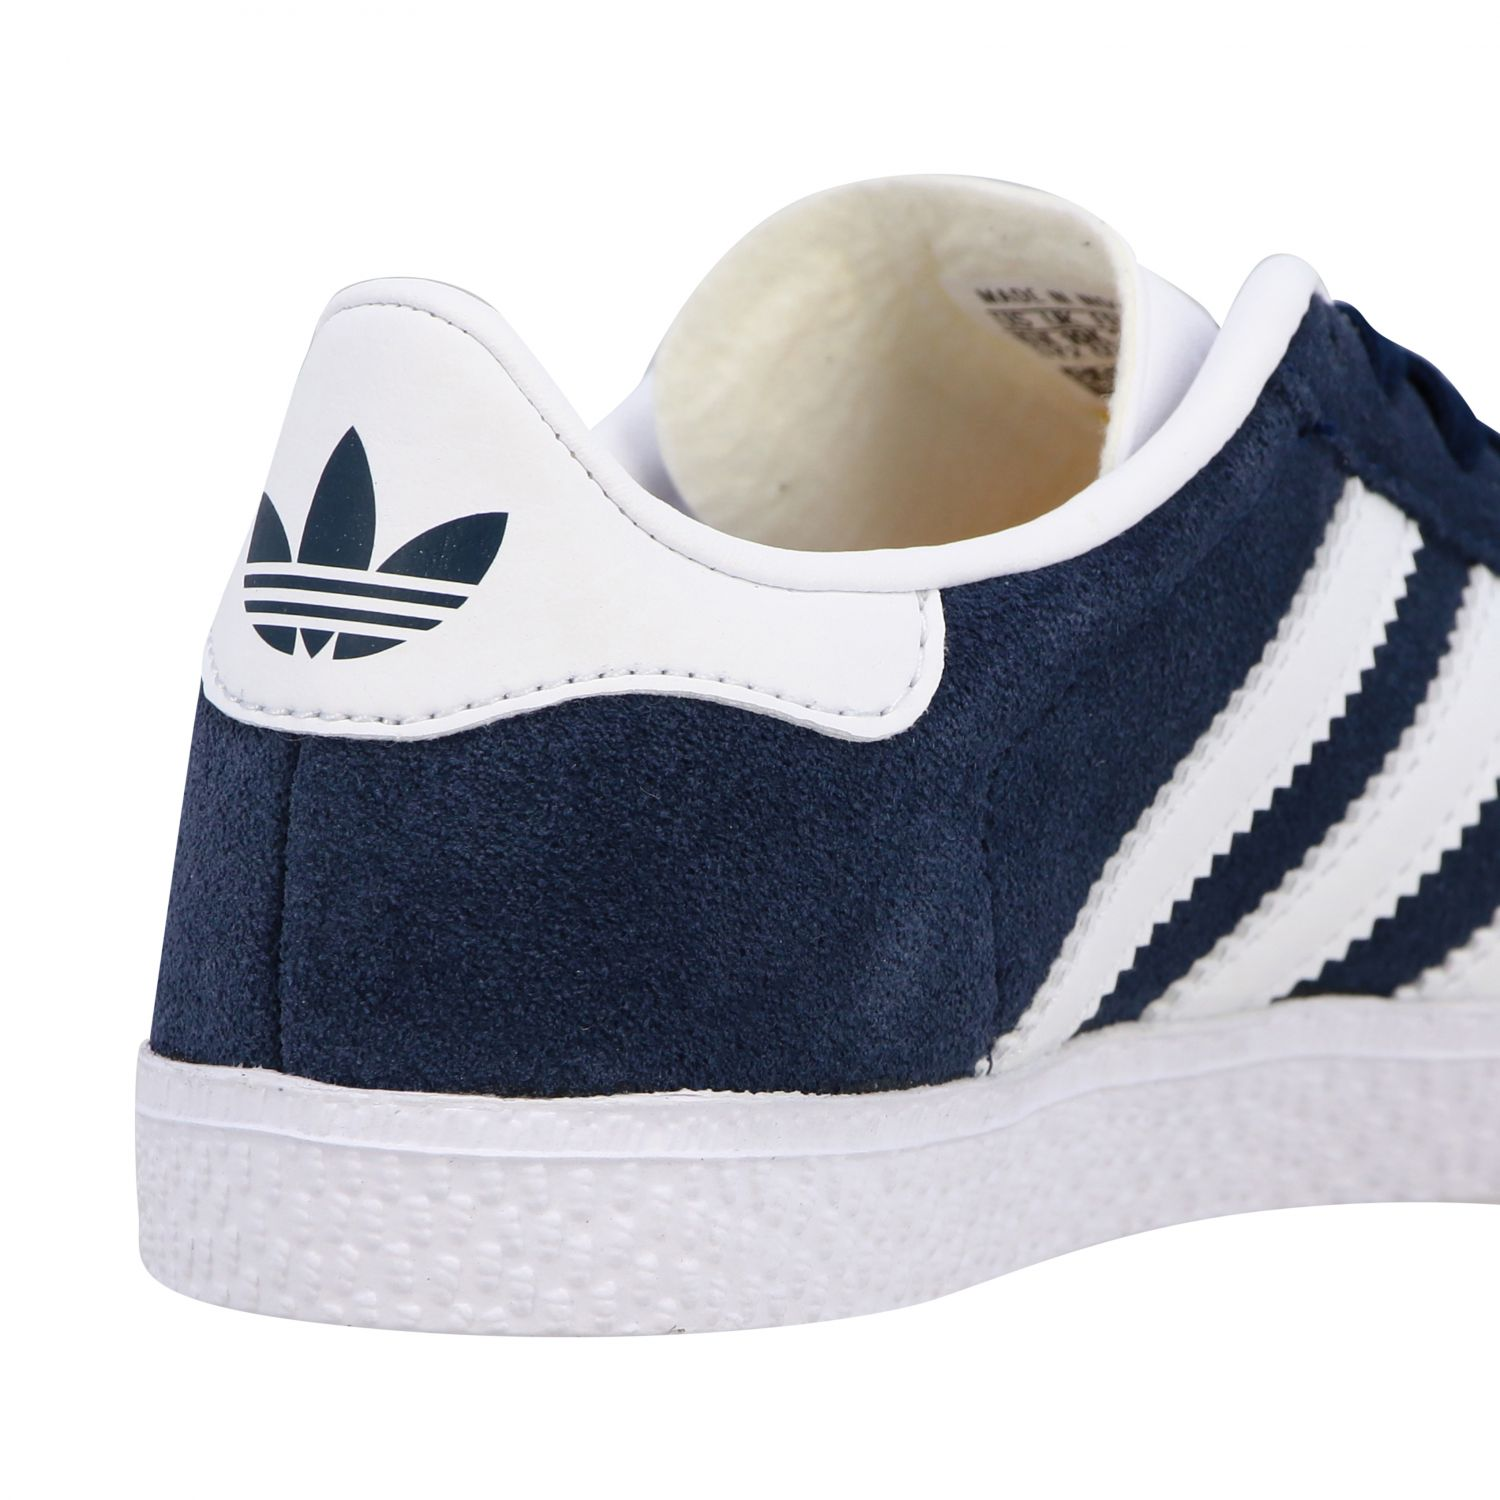 Shoes Adidas Originals: Gazelle C Adidas Originals sneakers in suede and leather blue 5